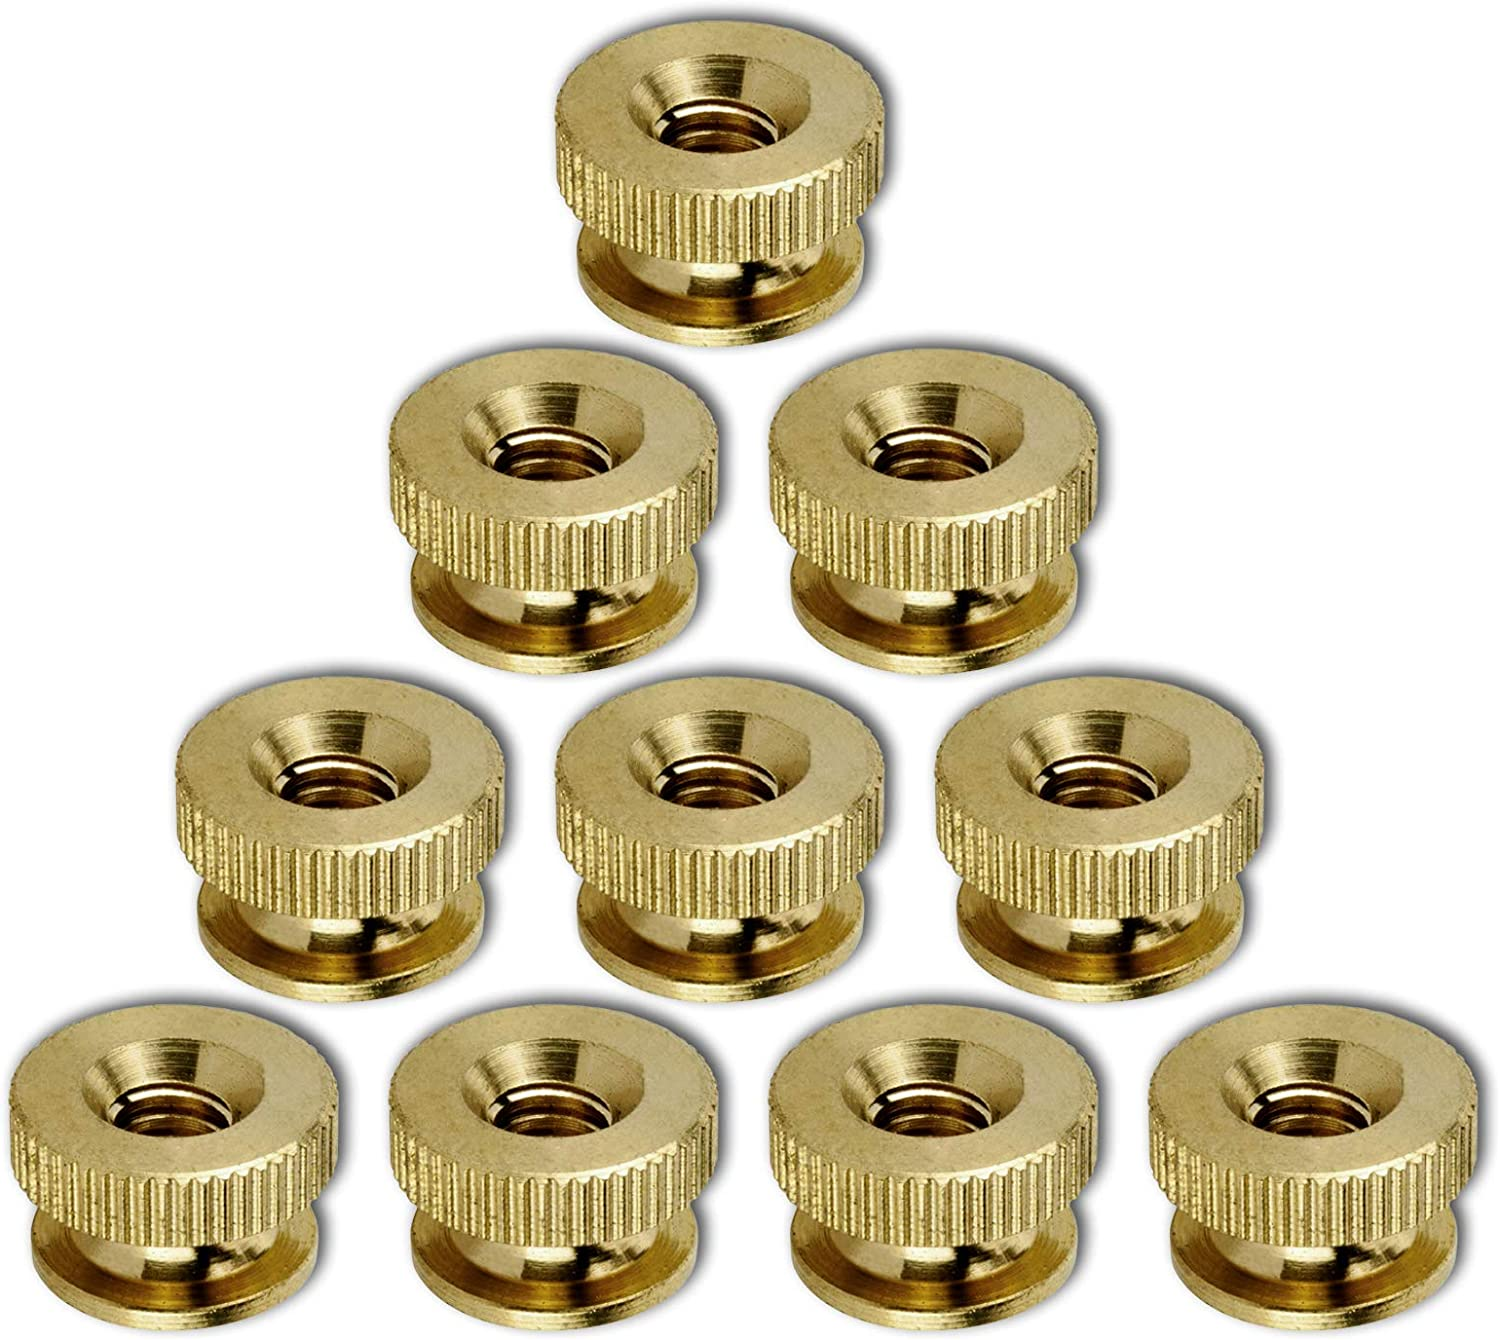 Solid Brass Knurled Thumb Nuts Lock Nuts for Wheels Super S Round and Round Super Deal Pack Knurled Thumb Knurled Nuts Thumb Nut Brass 5//16-18 Super-Deals-Shop 10 Pcs